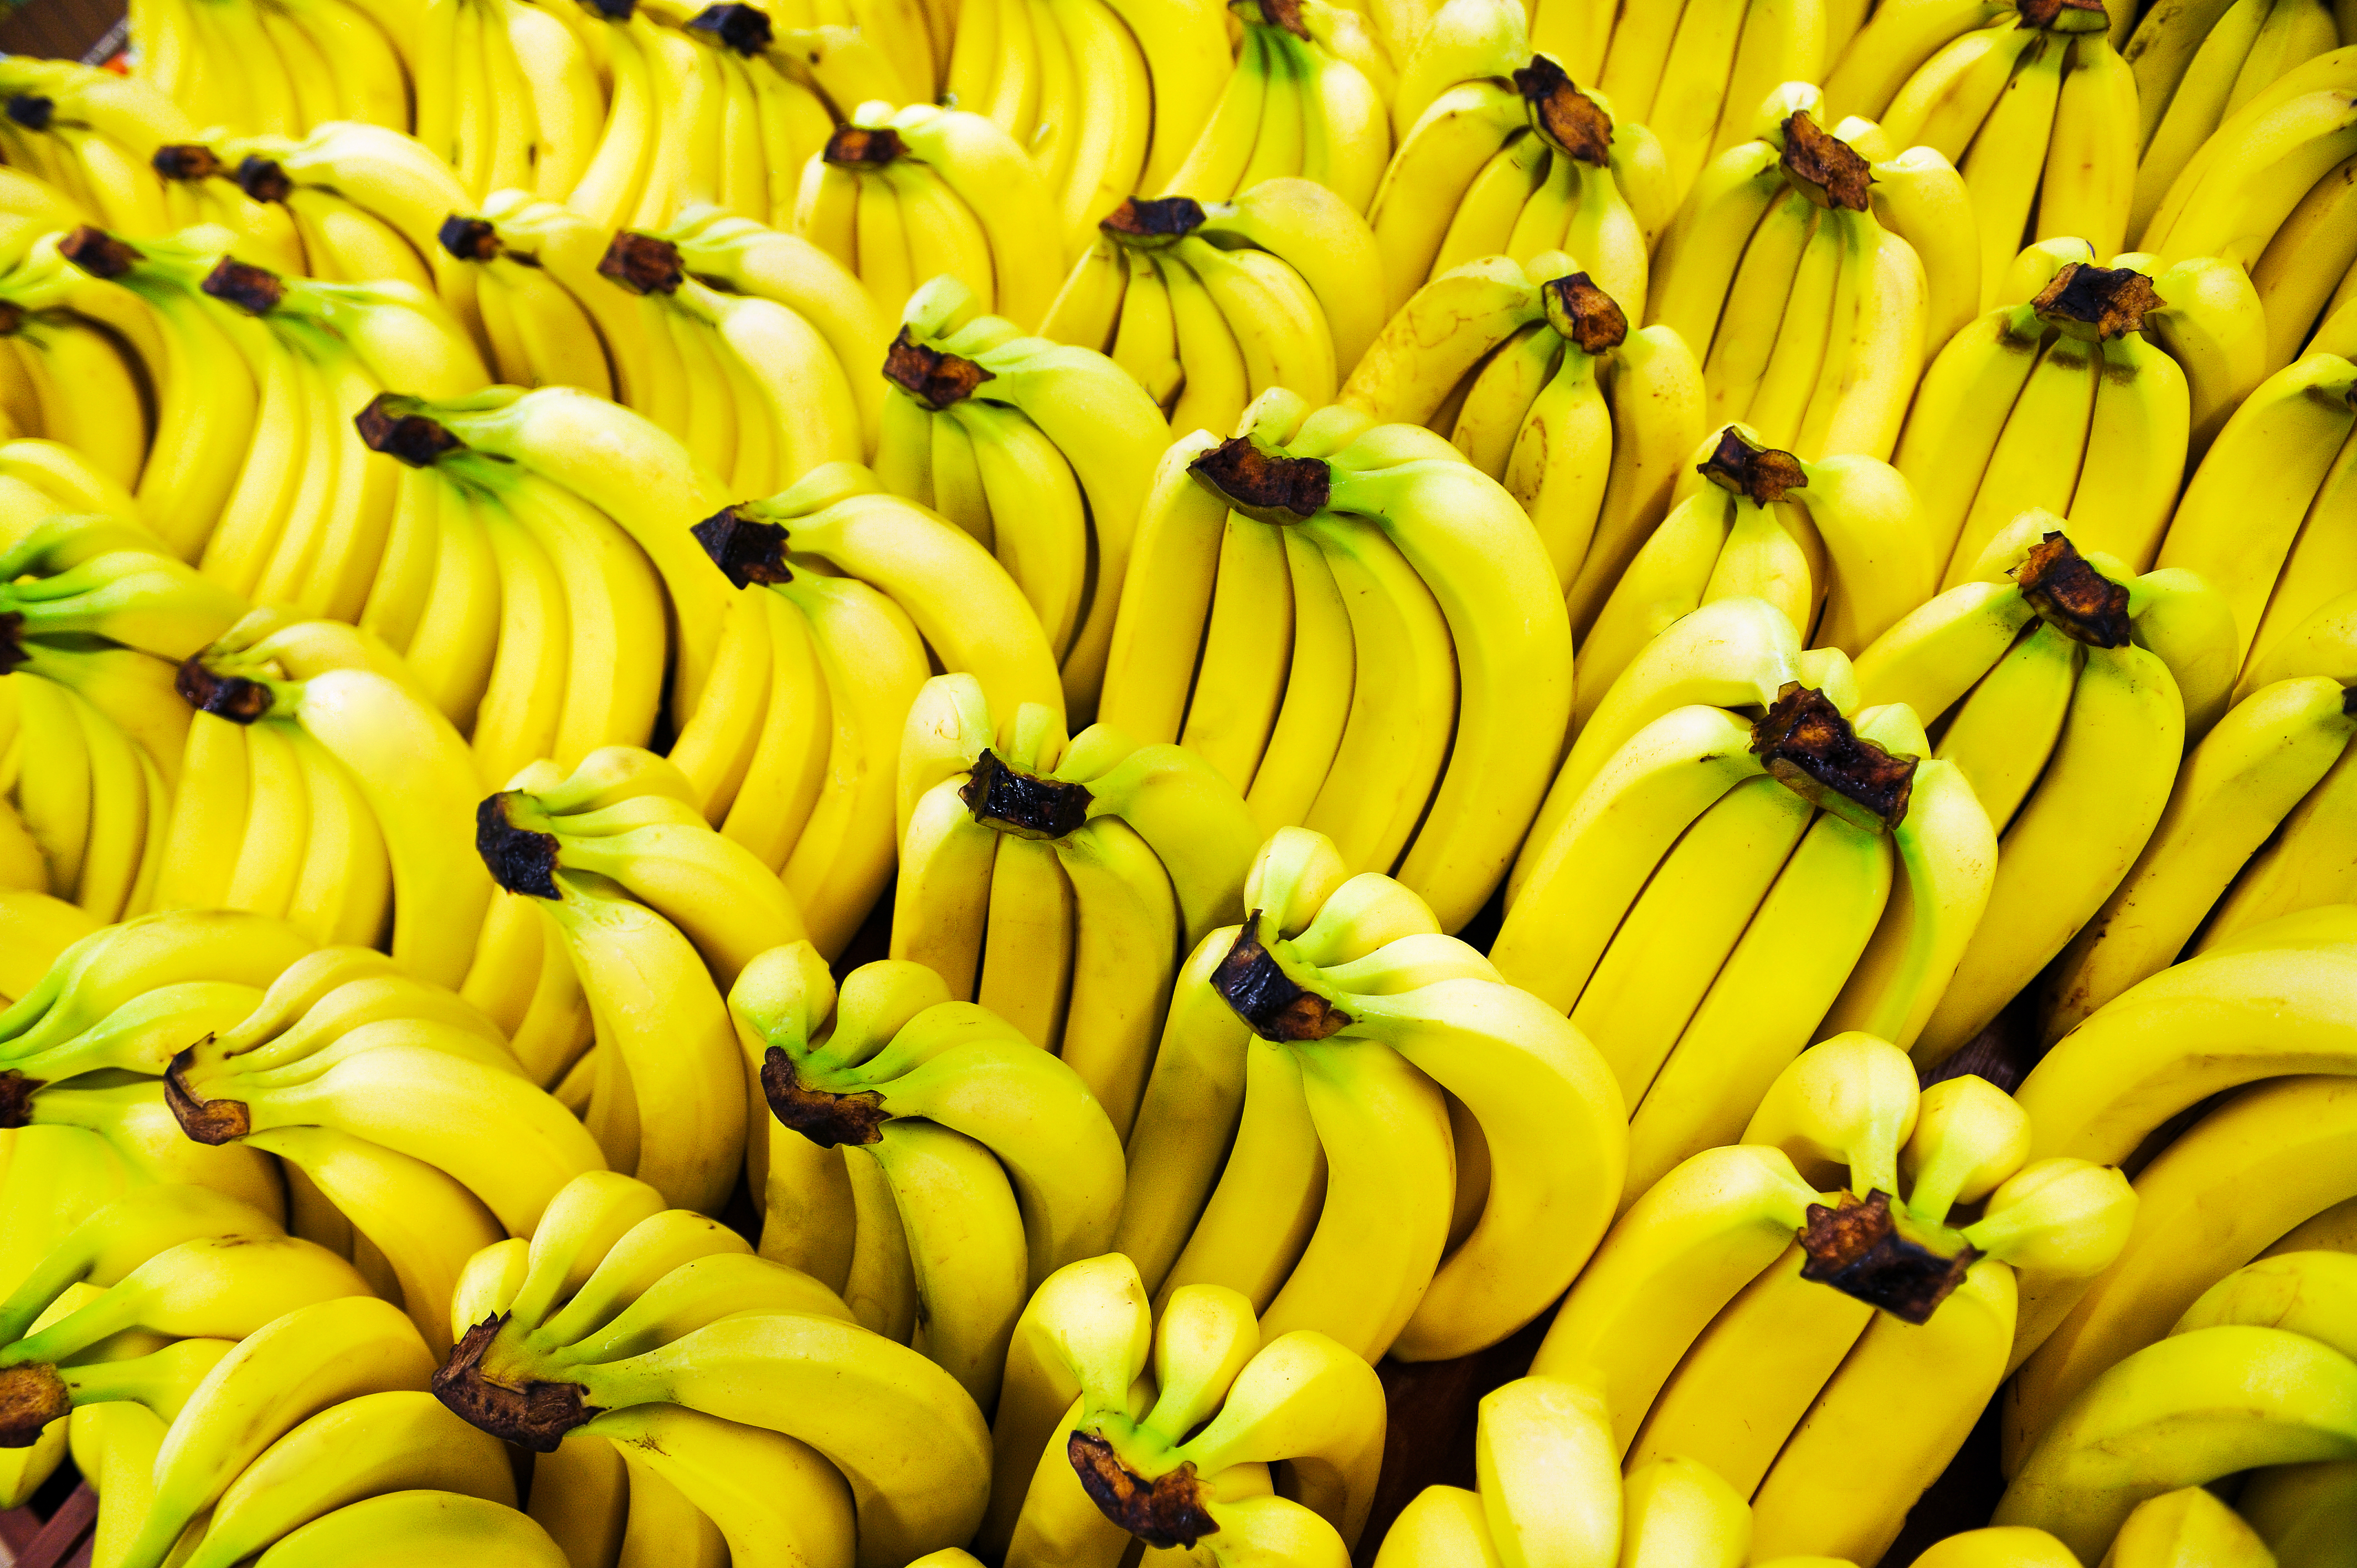 10 Reasons To Include Banana In Your Daily Diet